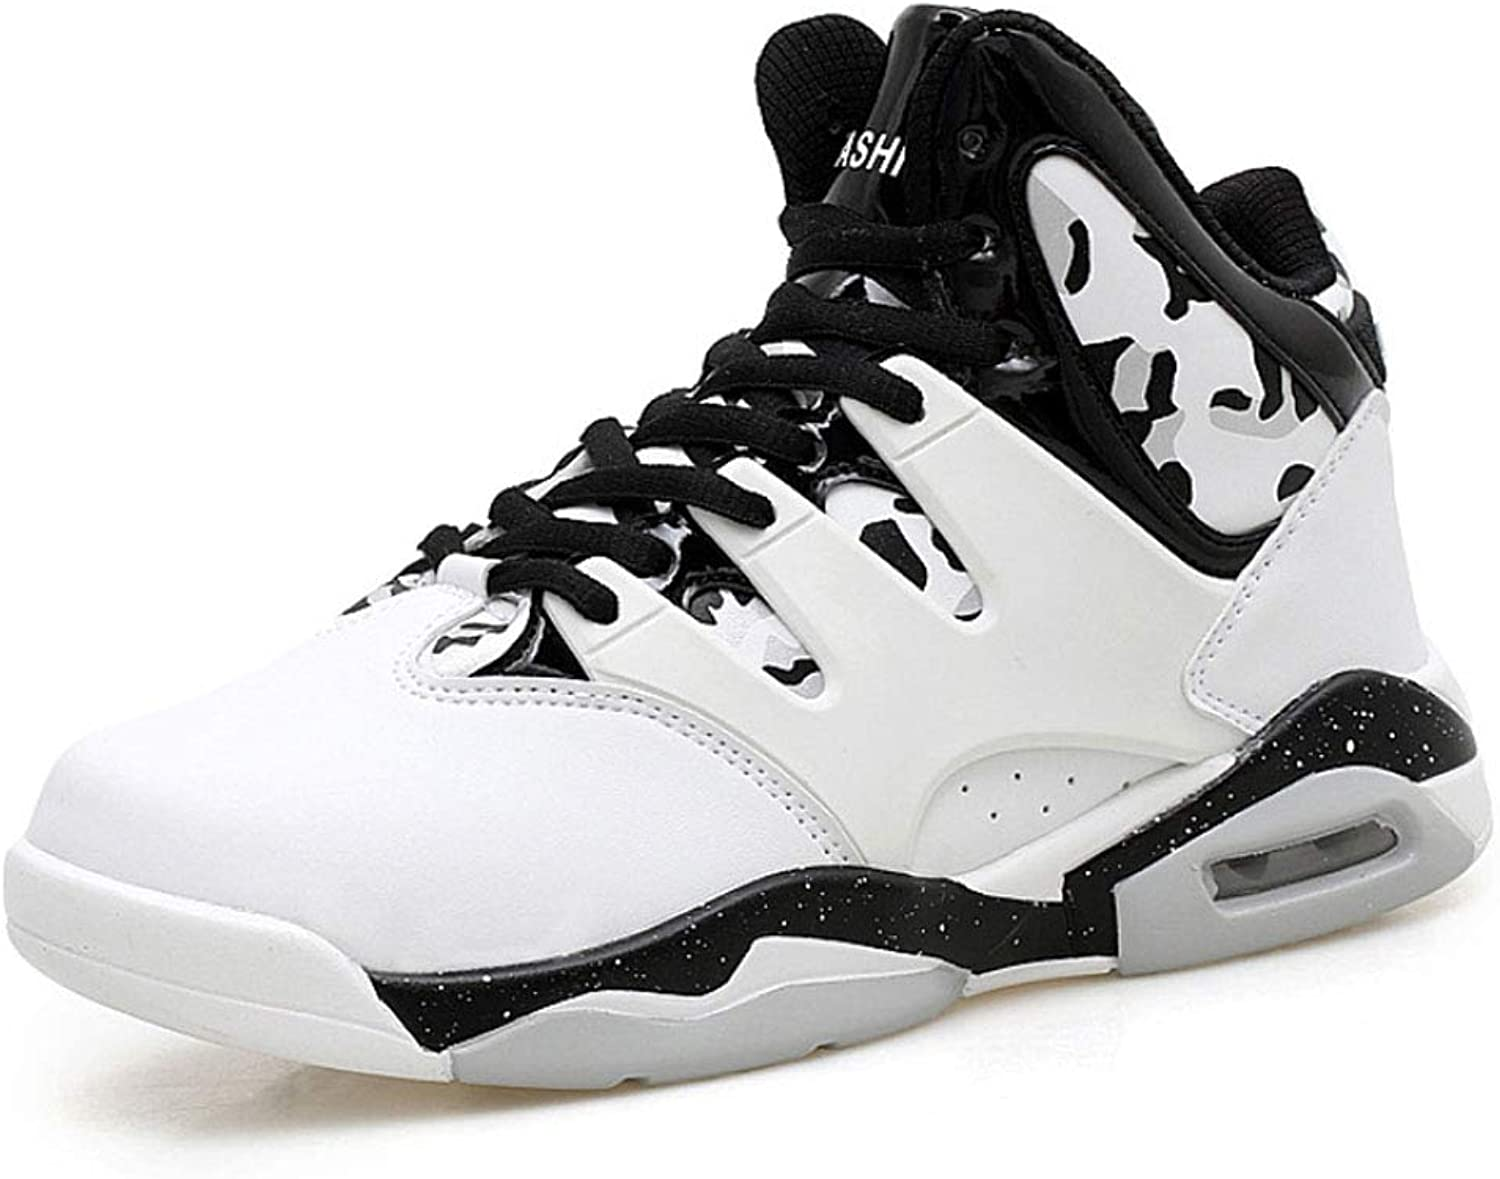 Basketball shoes, Sneakers, Men and Women, Couple shoes, Shock Absorption Cushioning Cushion shoes